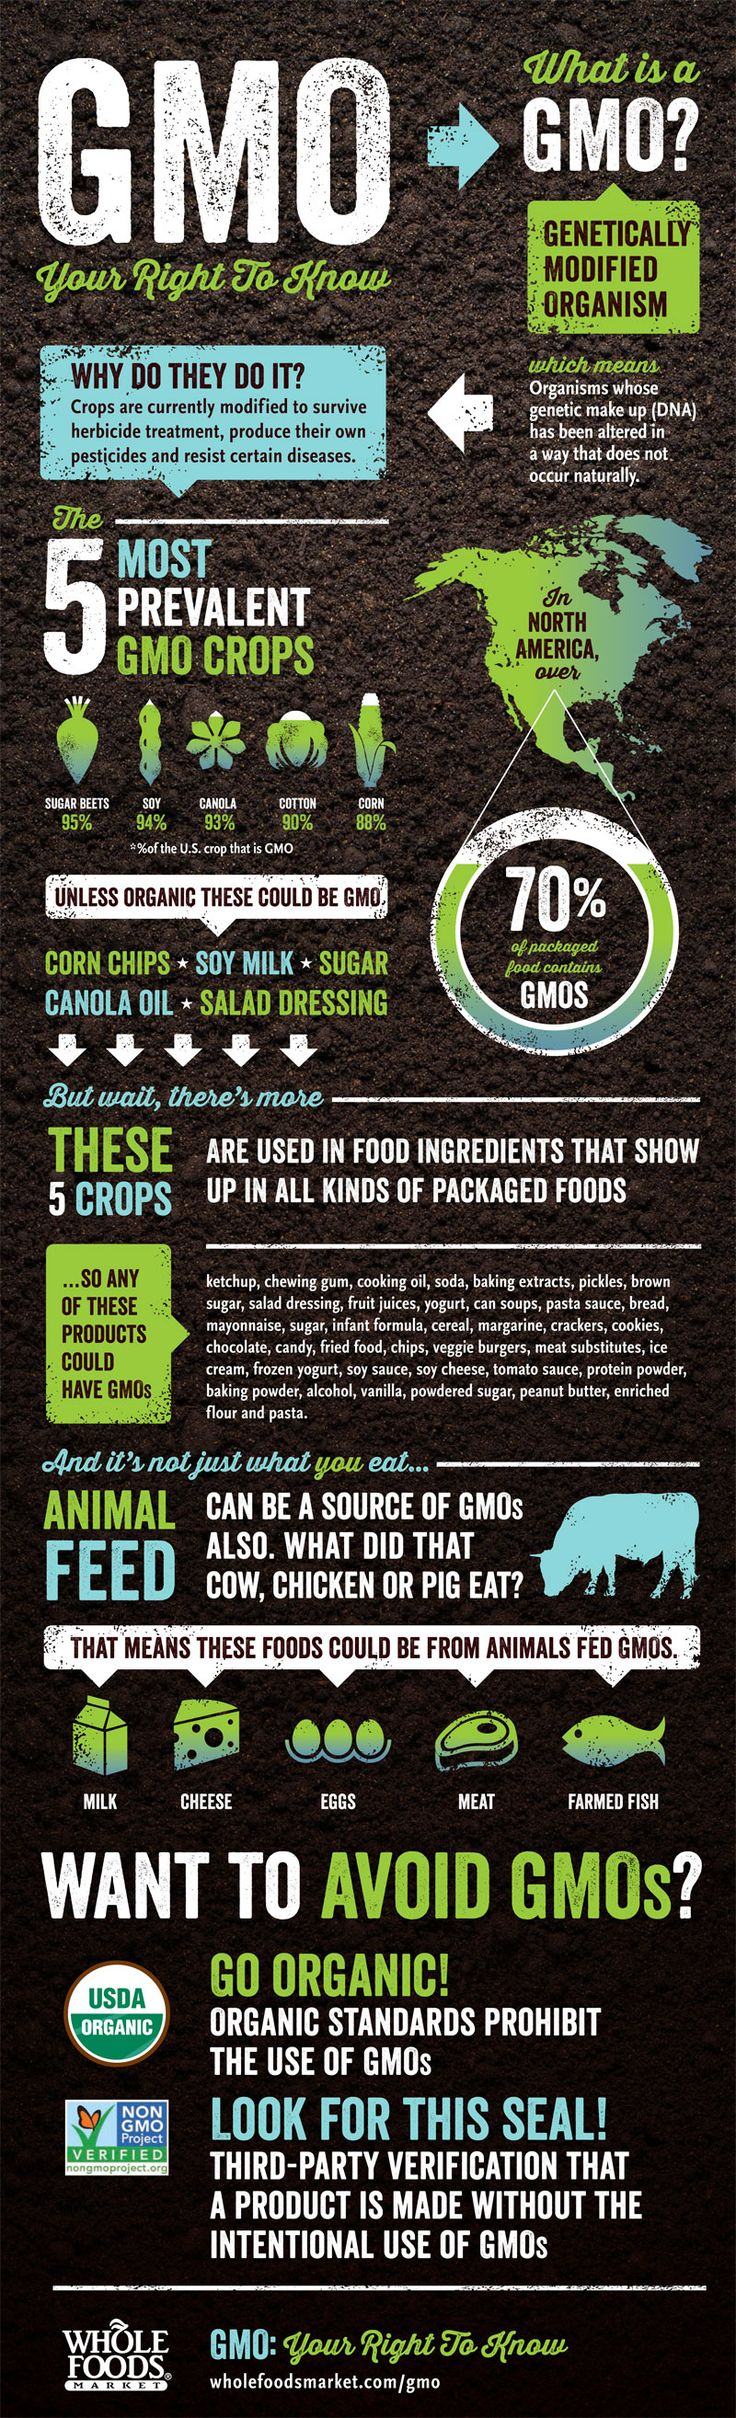 What is a GMO? Whole Foods Market produced the following infographic explaining genetically modified organisms. More about GMOs from Whole Foods Market can be found on their GMO page here: http://www.wholefoodsmarket.com/gmo-your-right-know <3